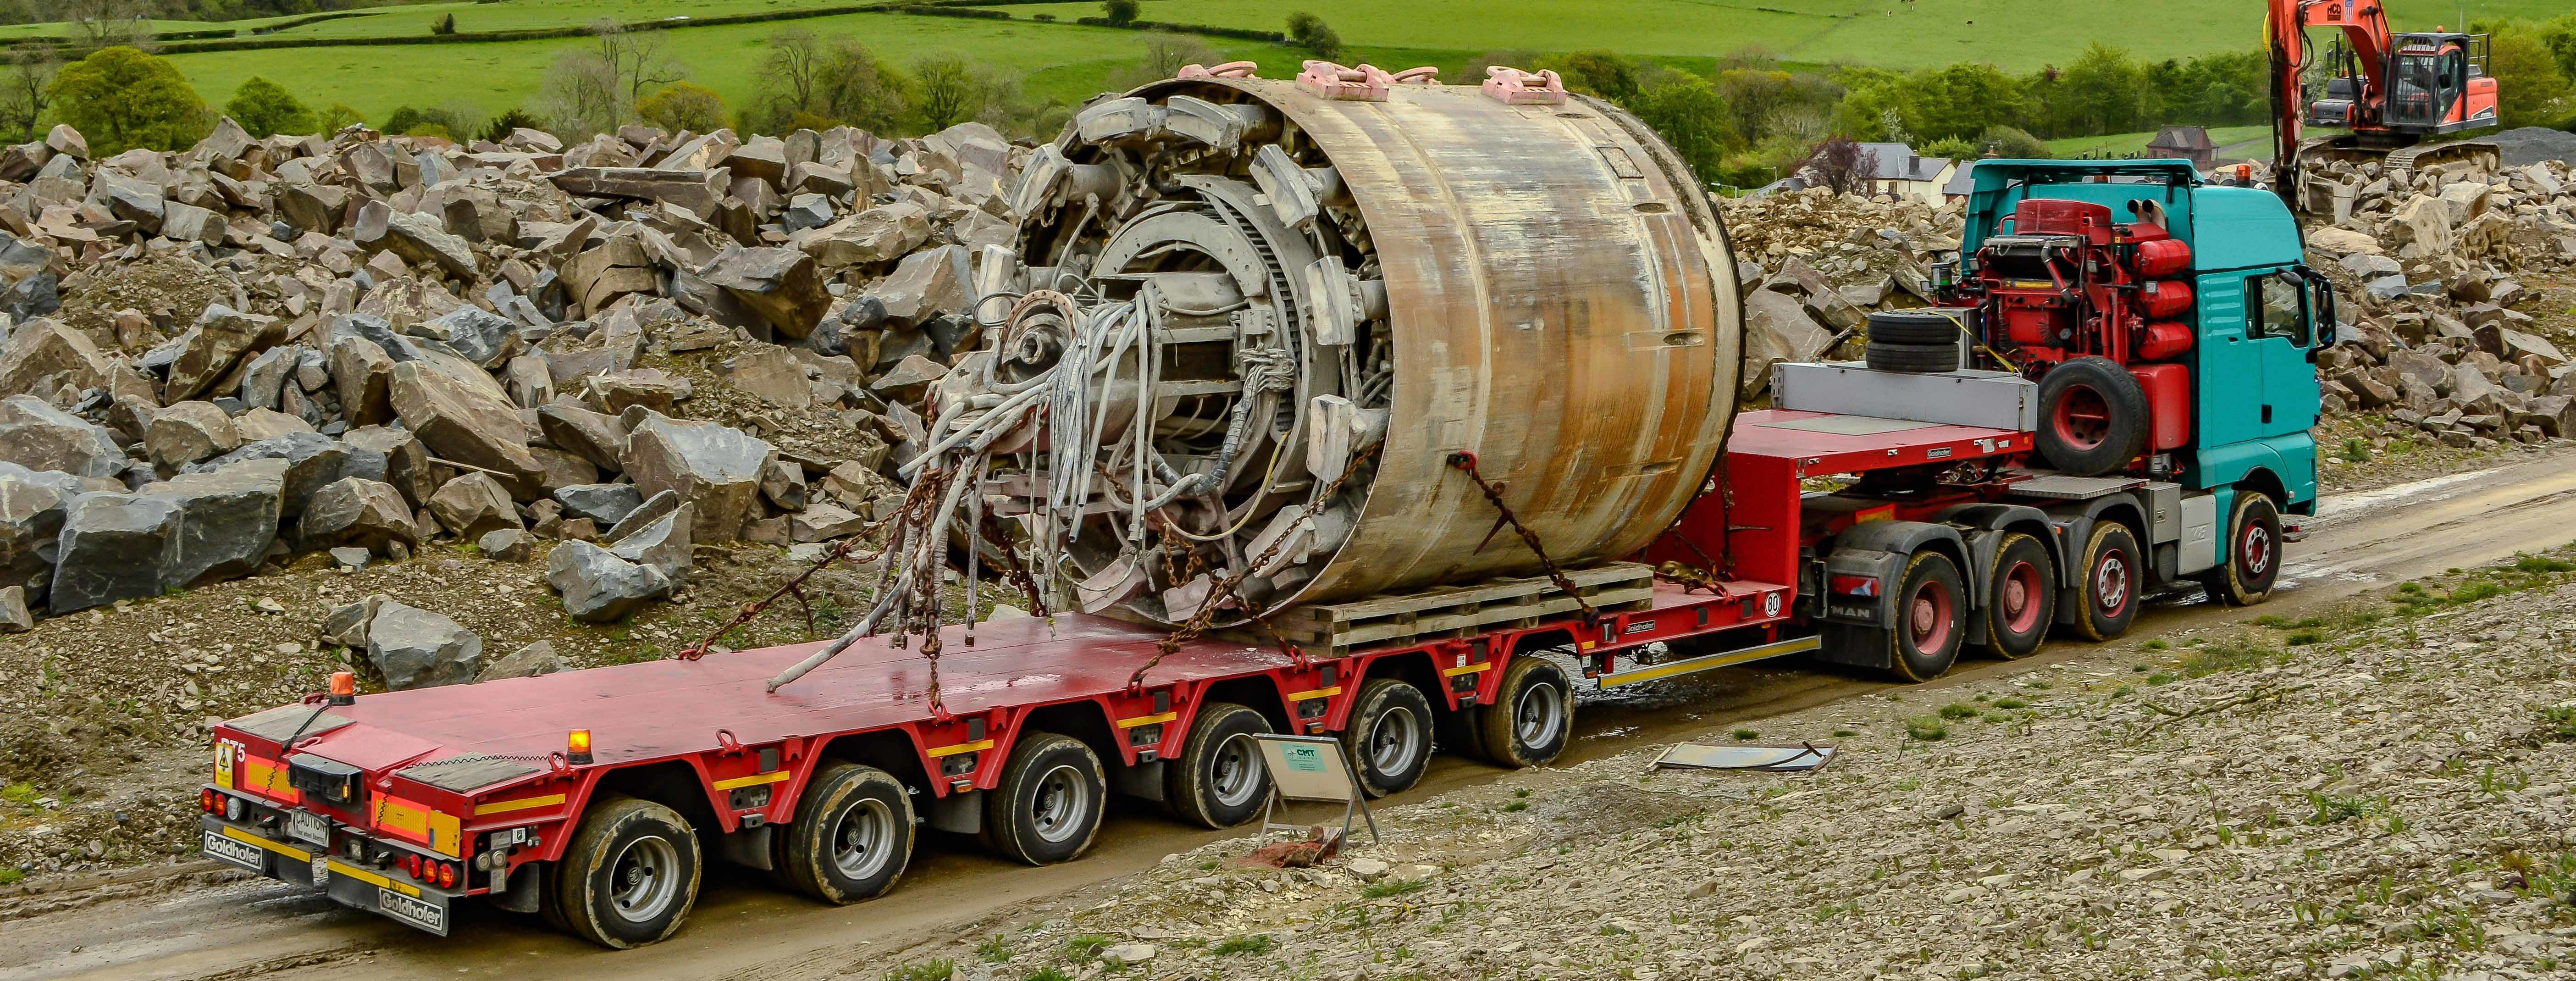 Tbm Section On Transport Wales